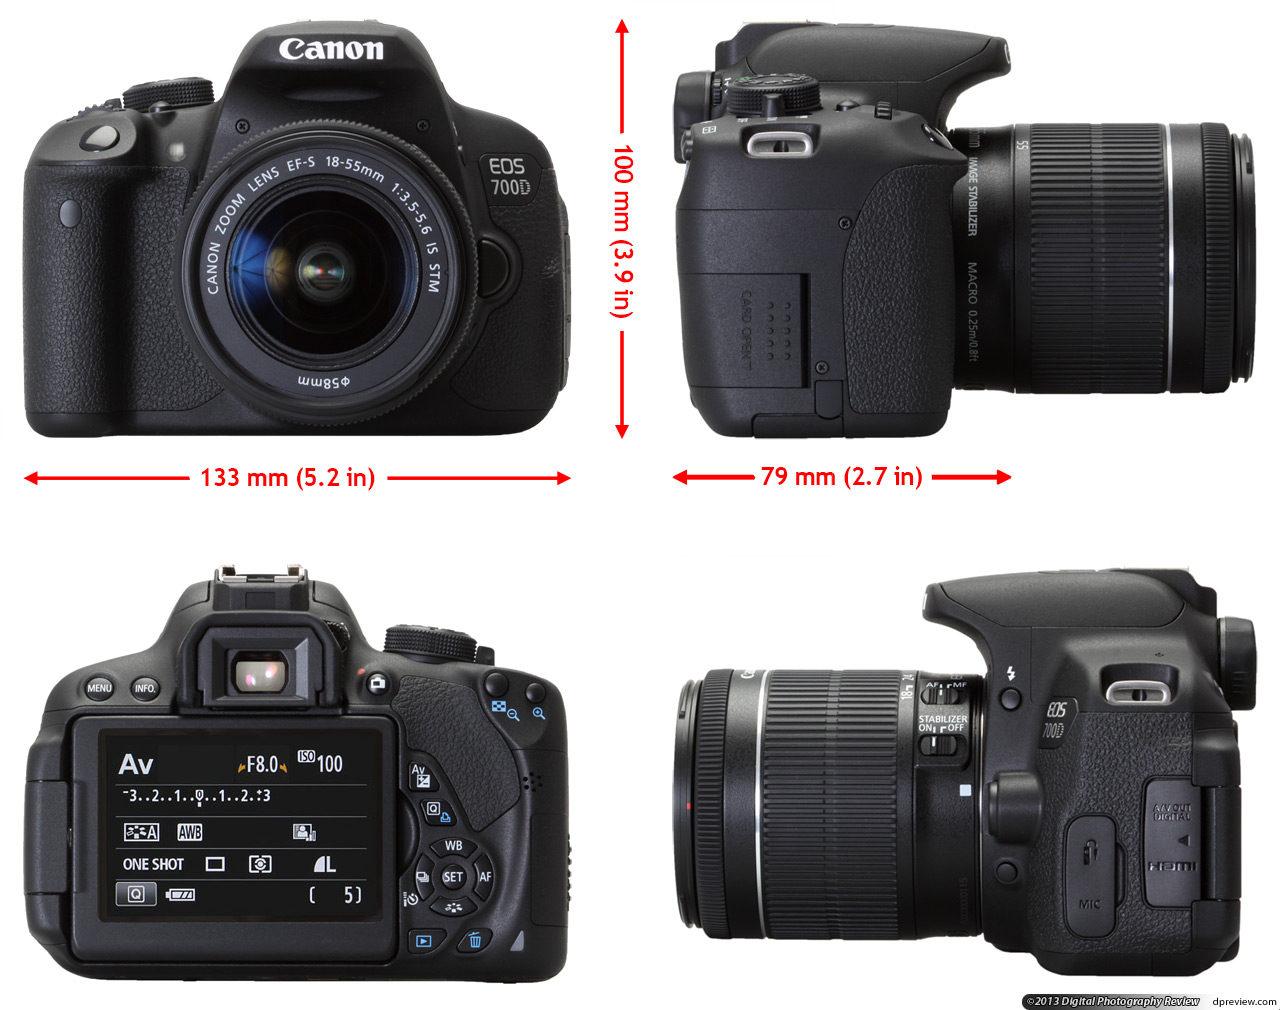 canon 700d firmware on canon 600d